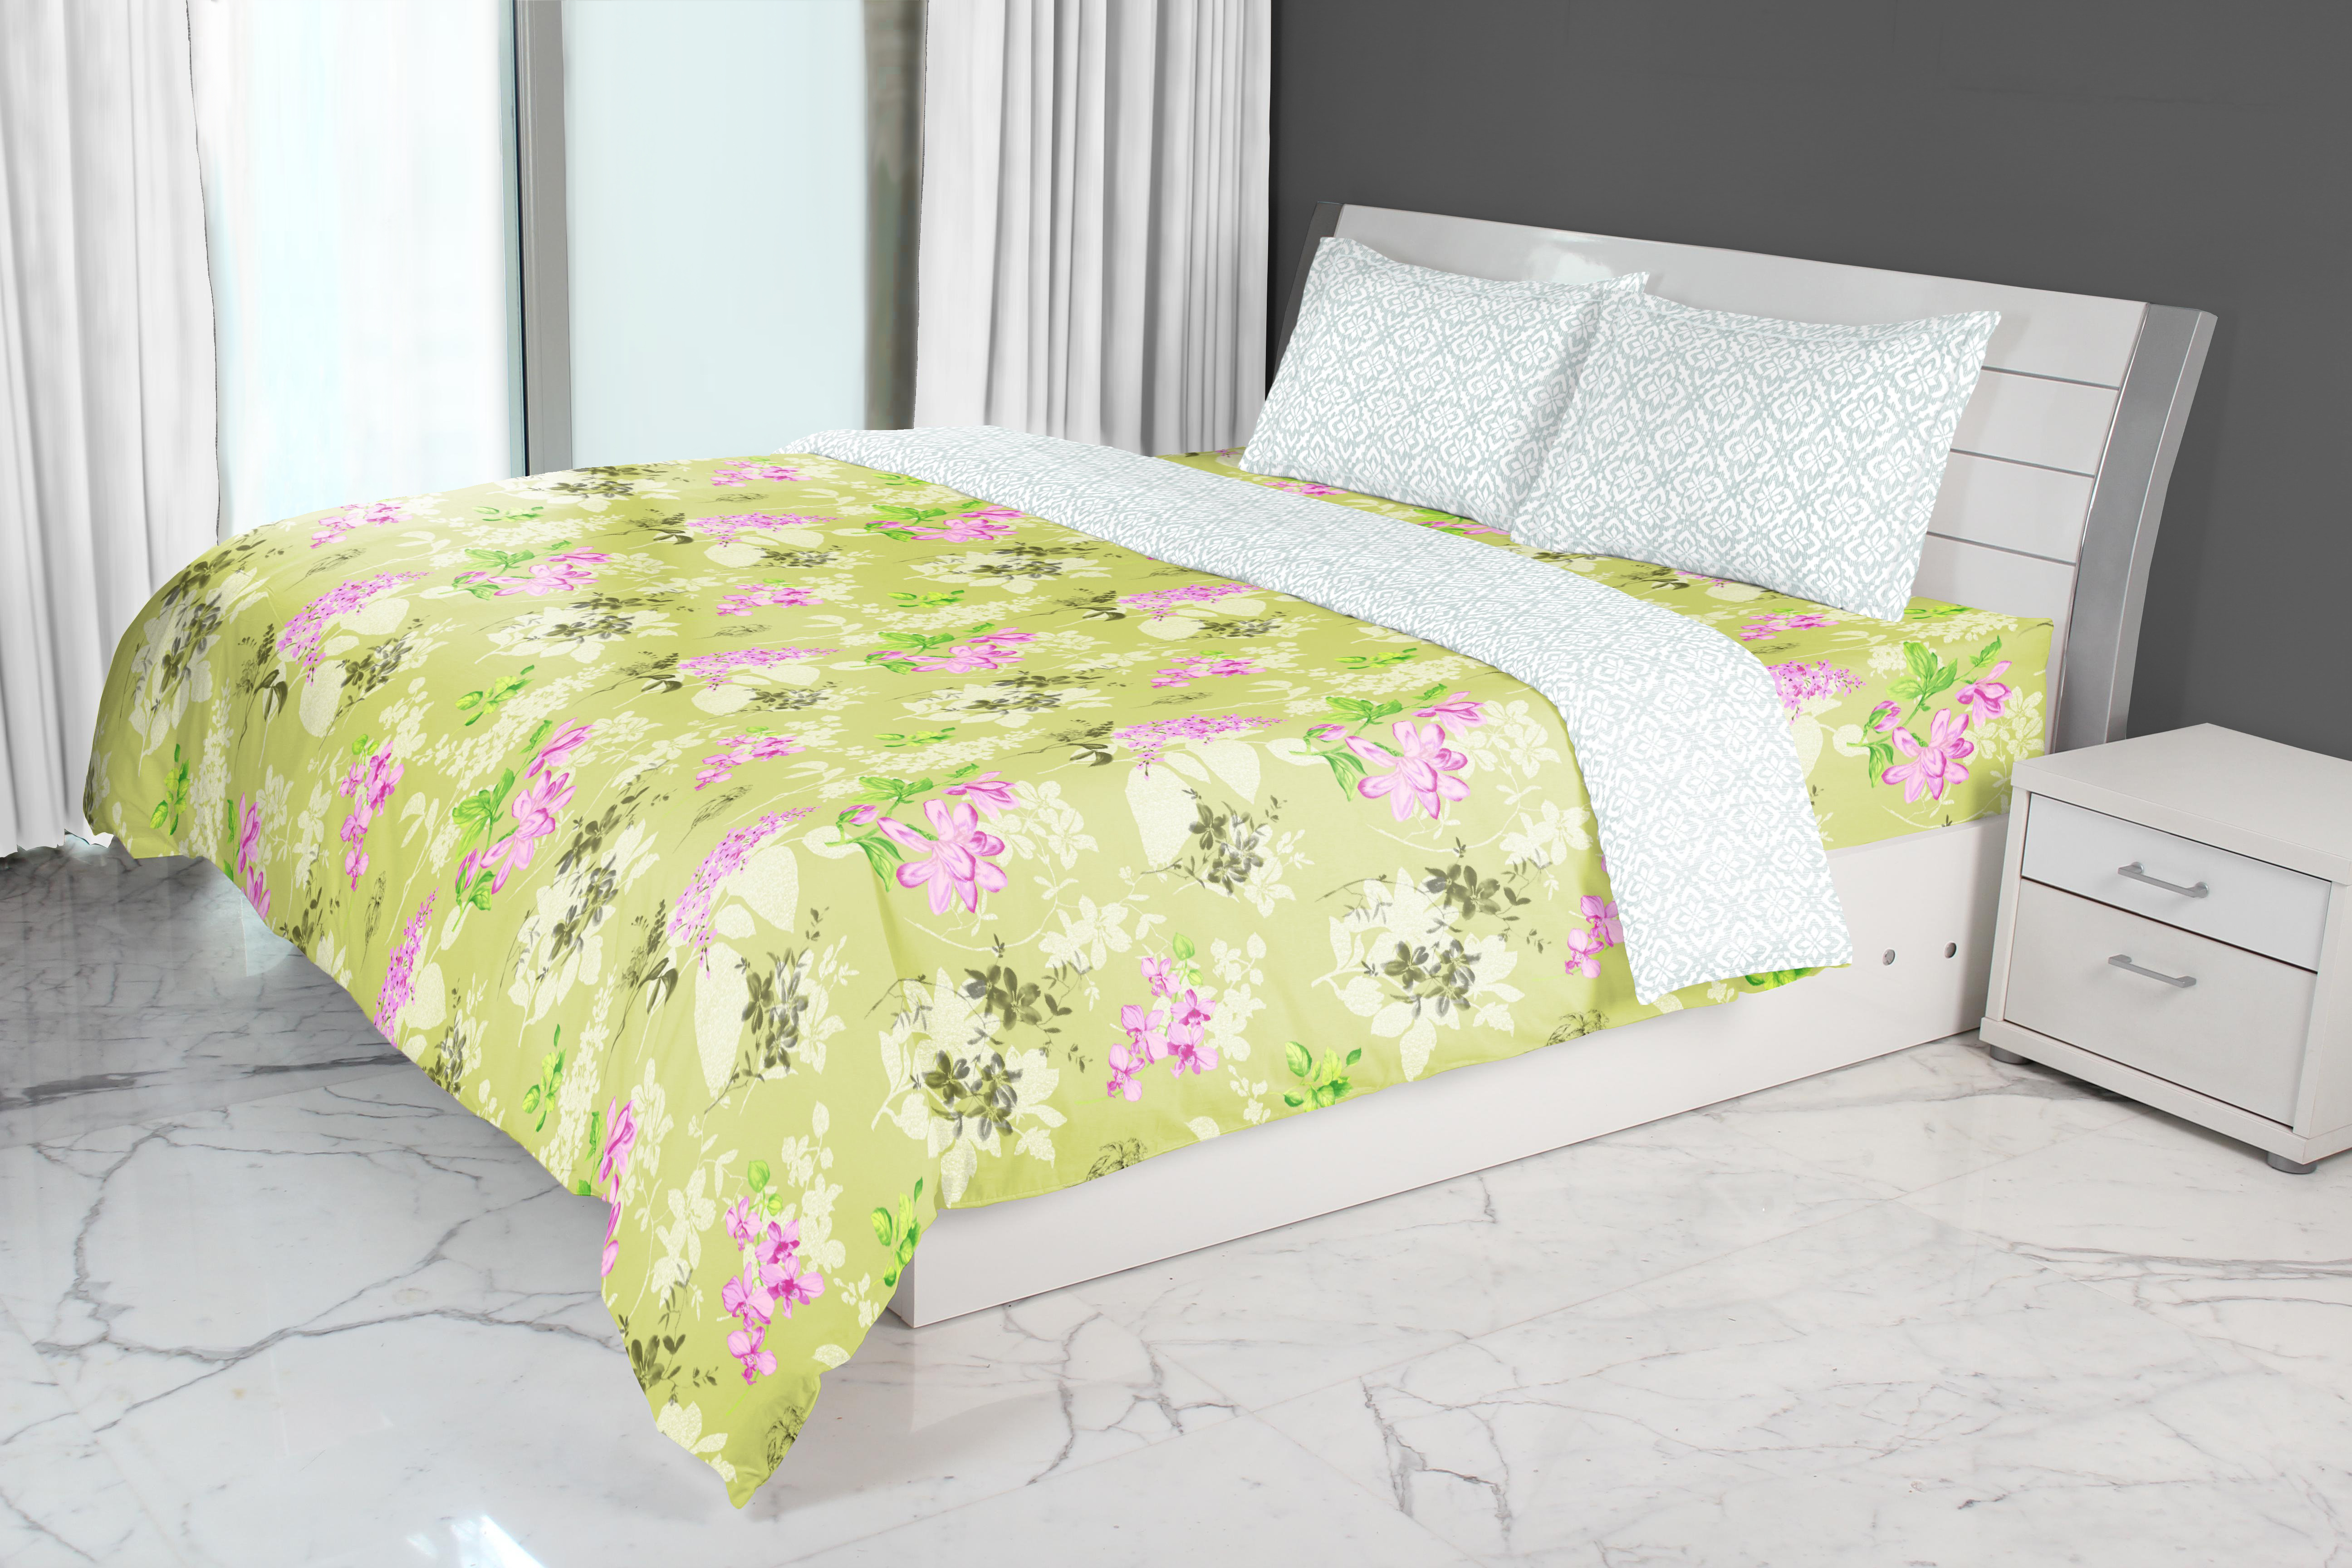 Emilia Cotton Comforters in Lime Colour by Living Essence